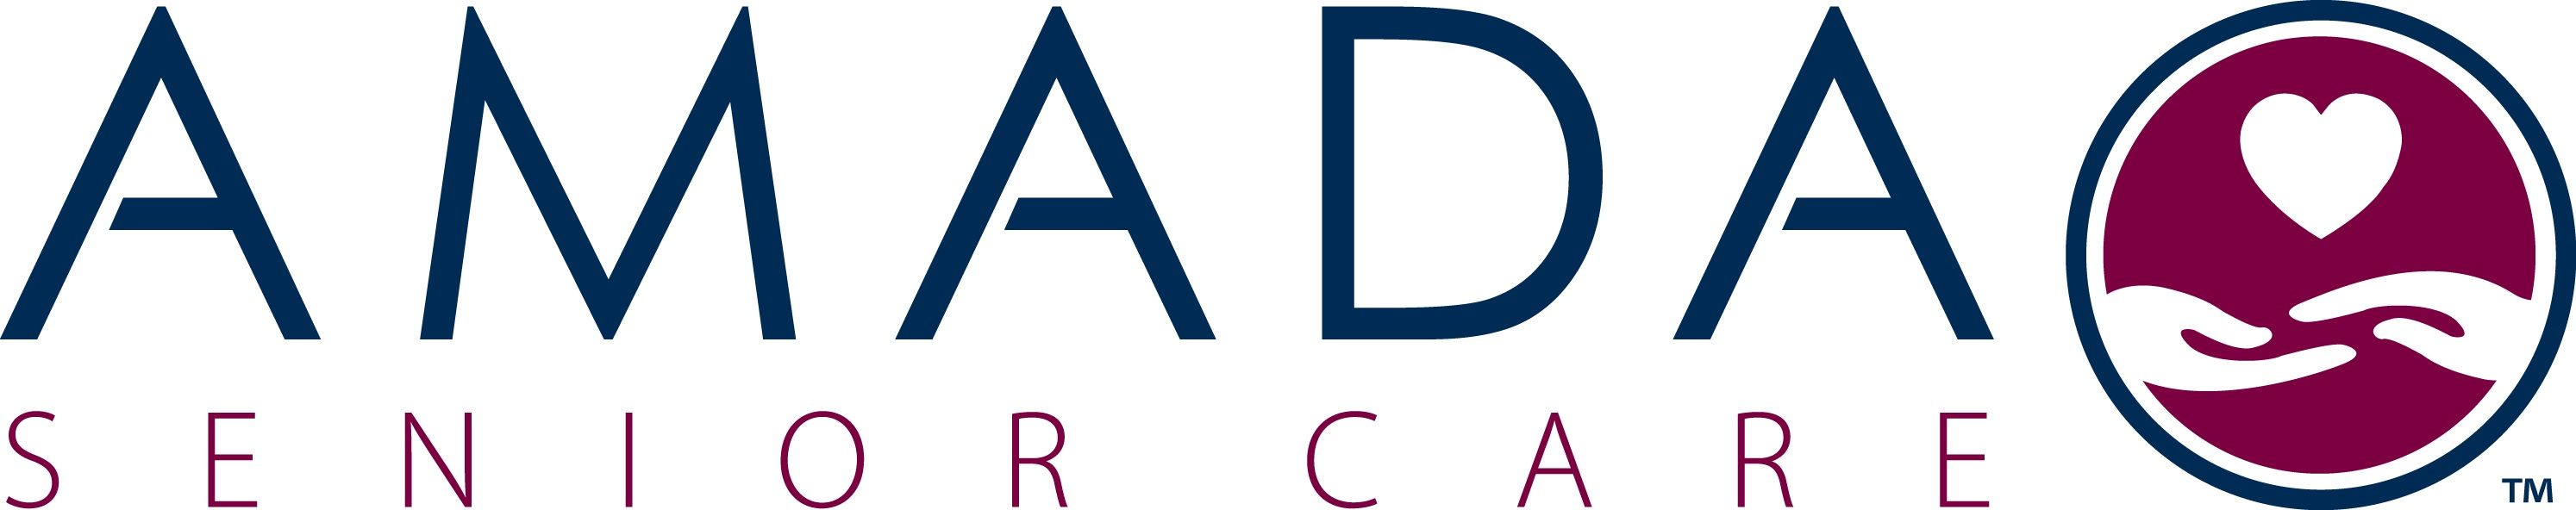 Amada Senior Care Tulsa